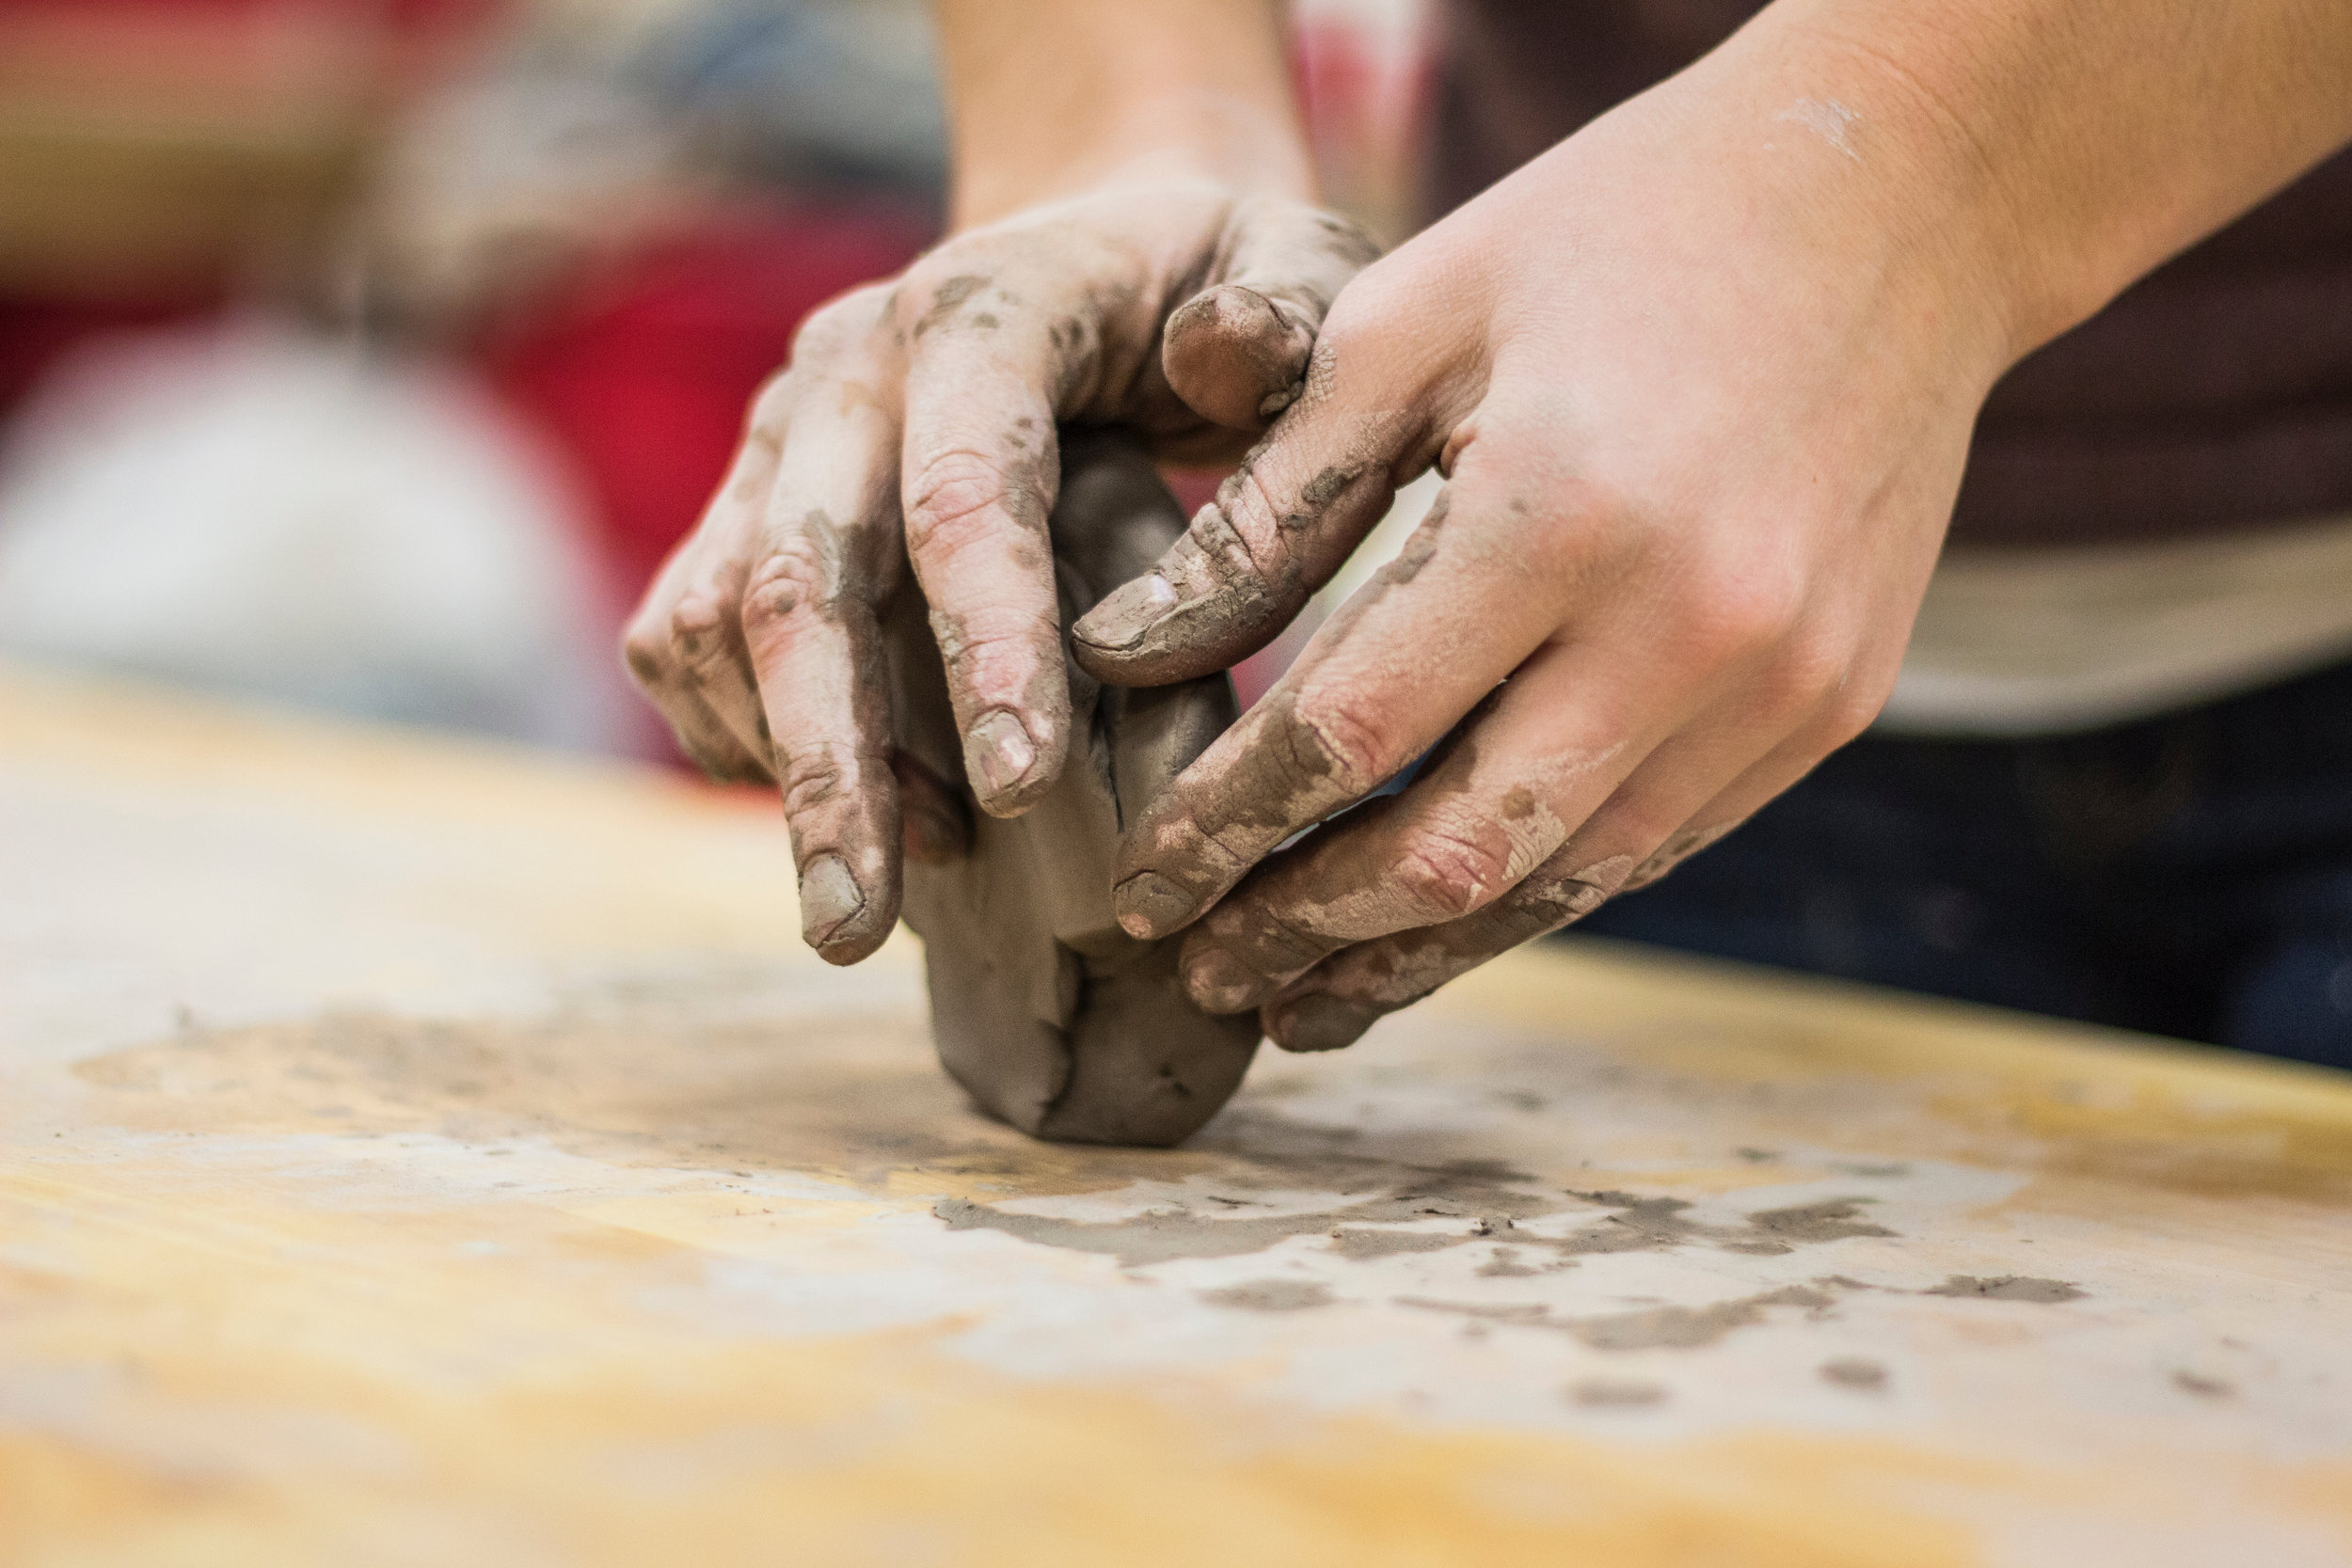 Art therapy can use a variety of mediums. Clay, for example, can support reconnection with physical sensations.